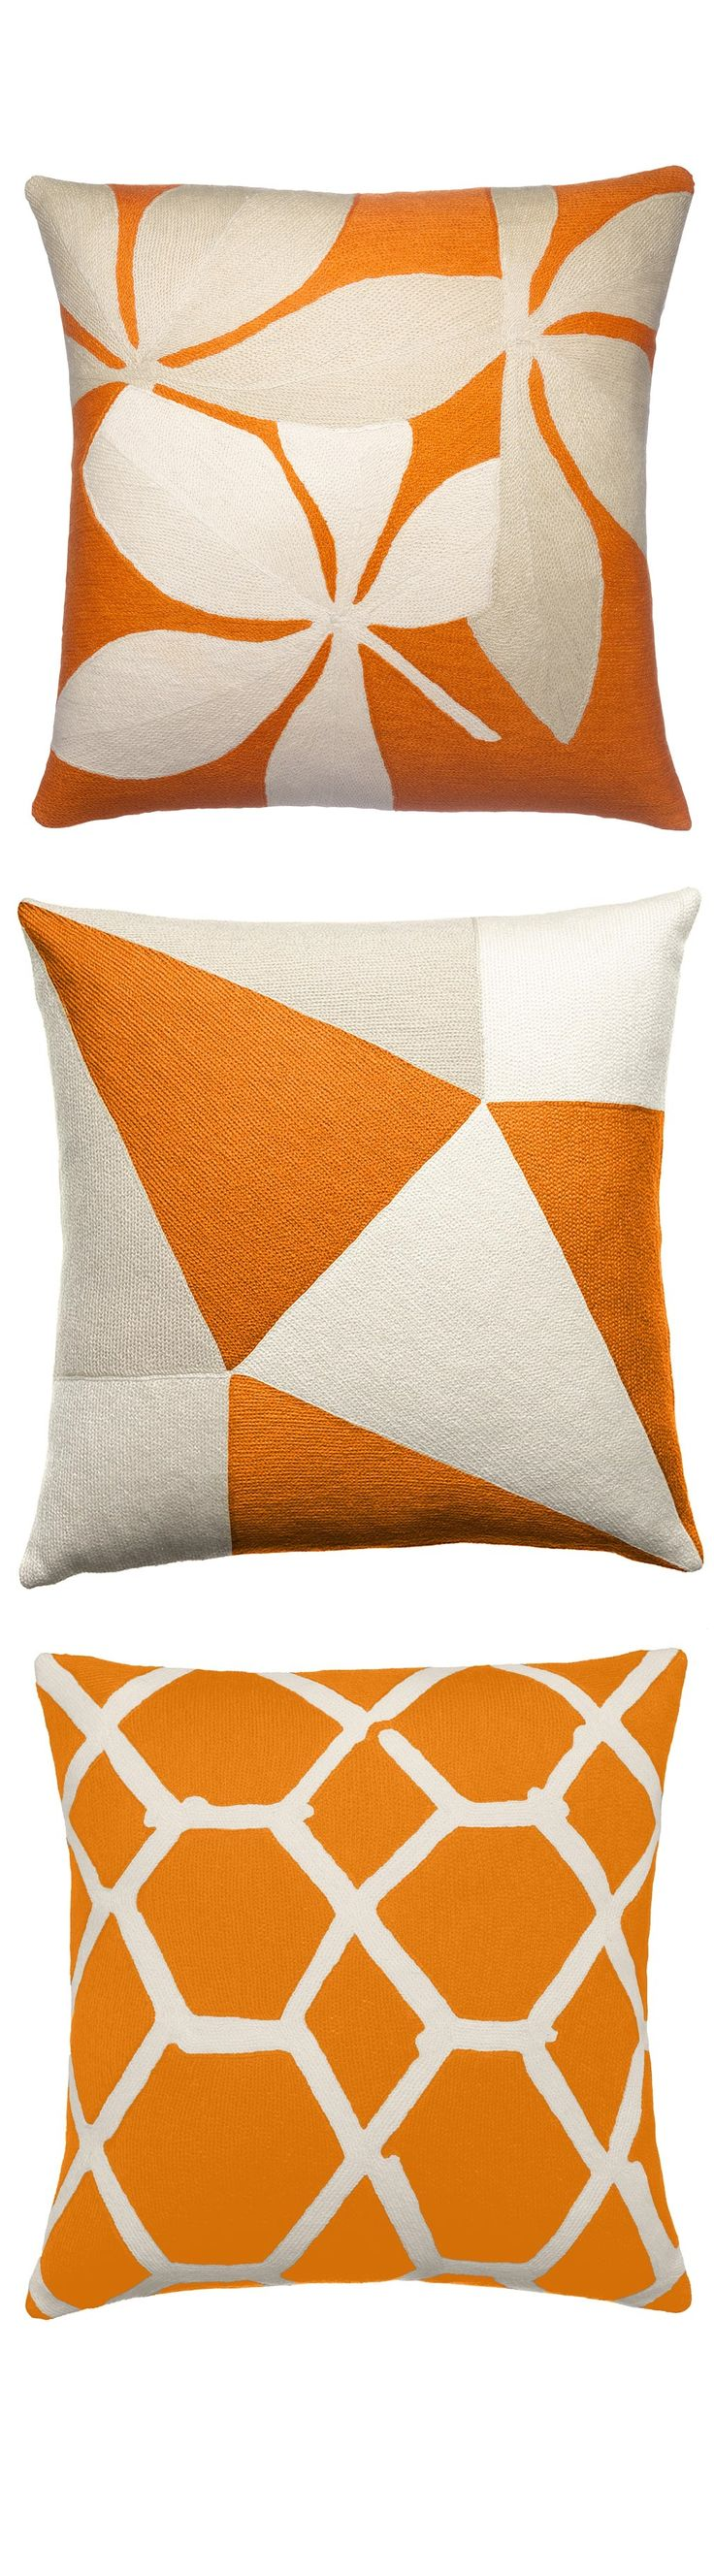 Best 25 Contemporary pillow covers ideas on Pinterest